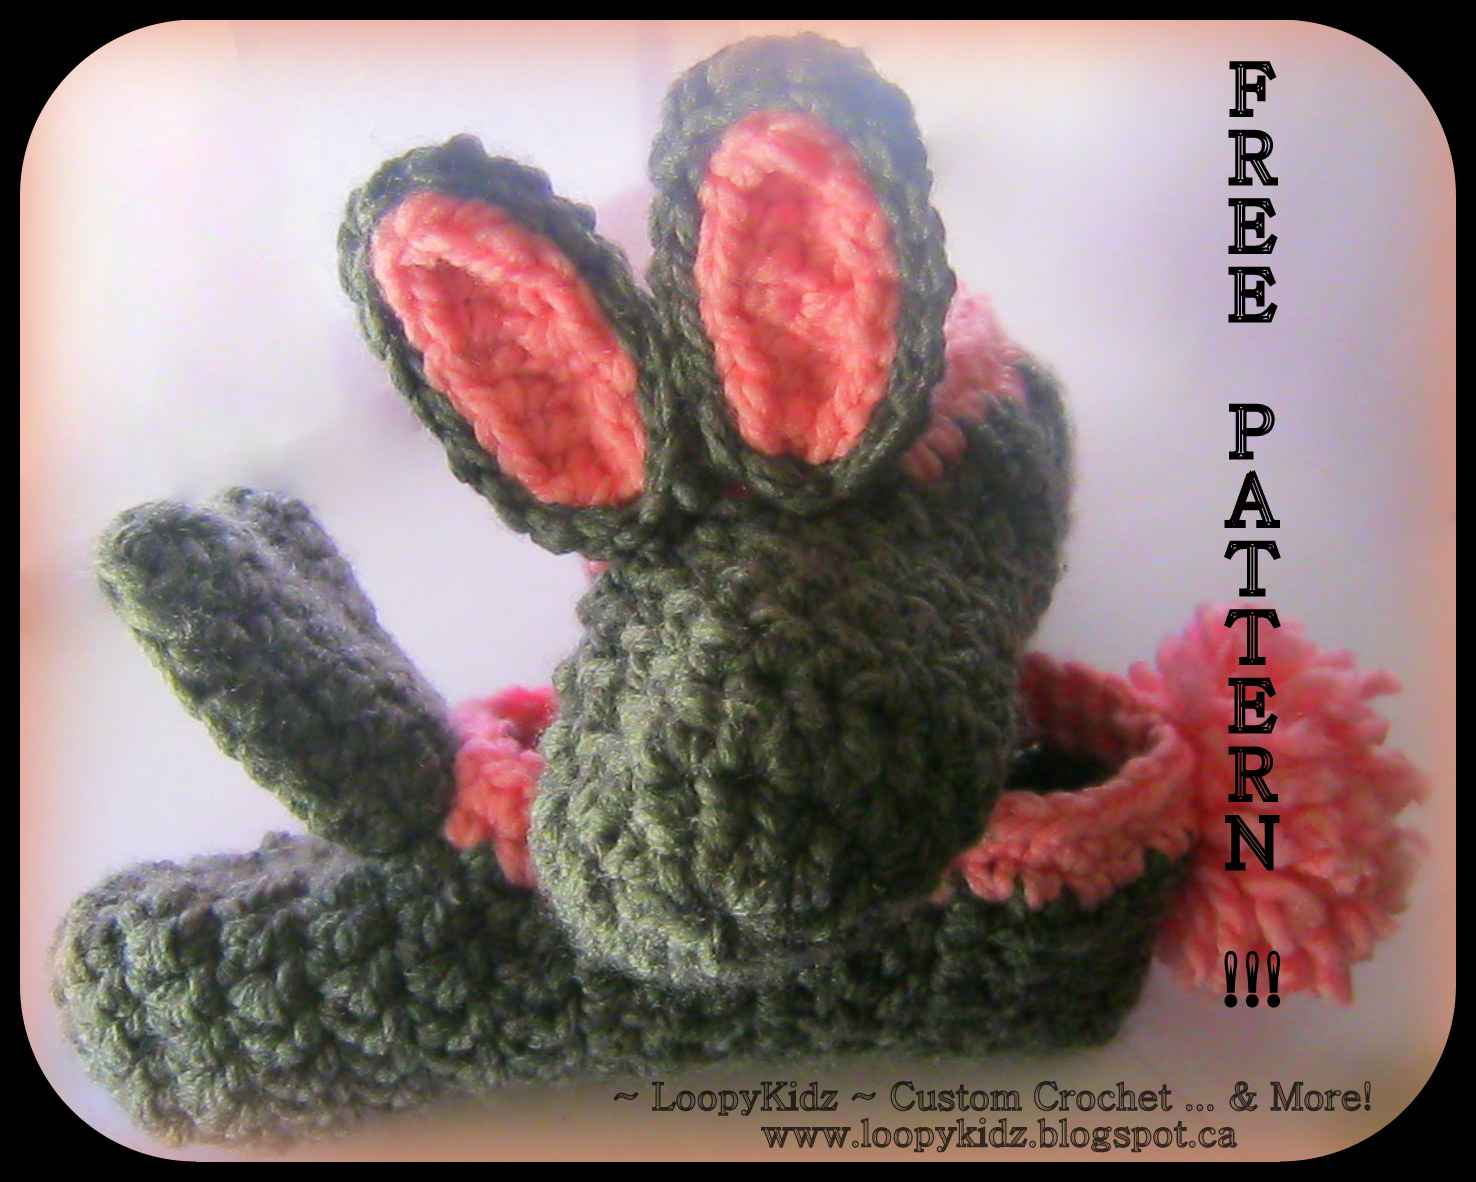 Free Crochet Pattern For Bunny Slippers : LoopyKidz: Super Simple Bunny Slippers FREE PATTERN!